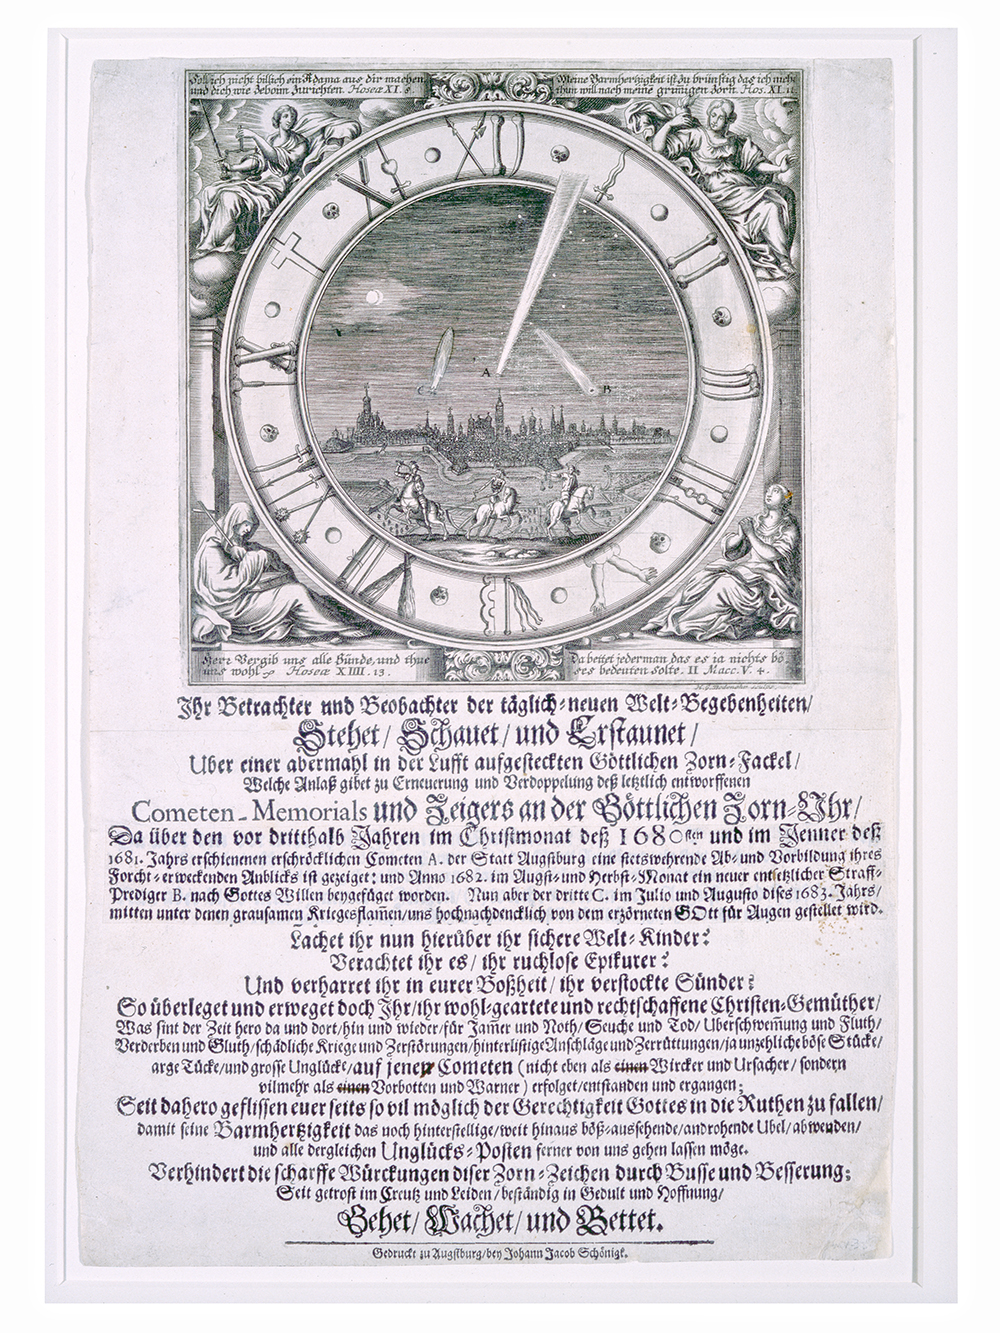 Comet broadside by Johann Jacob Schoenigk. Augsburg, Germany, 1683 (Adler Collection, P-3).